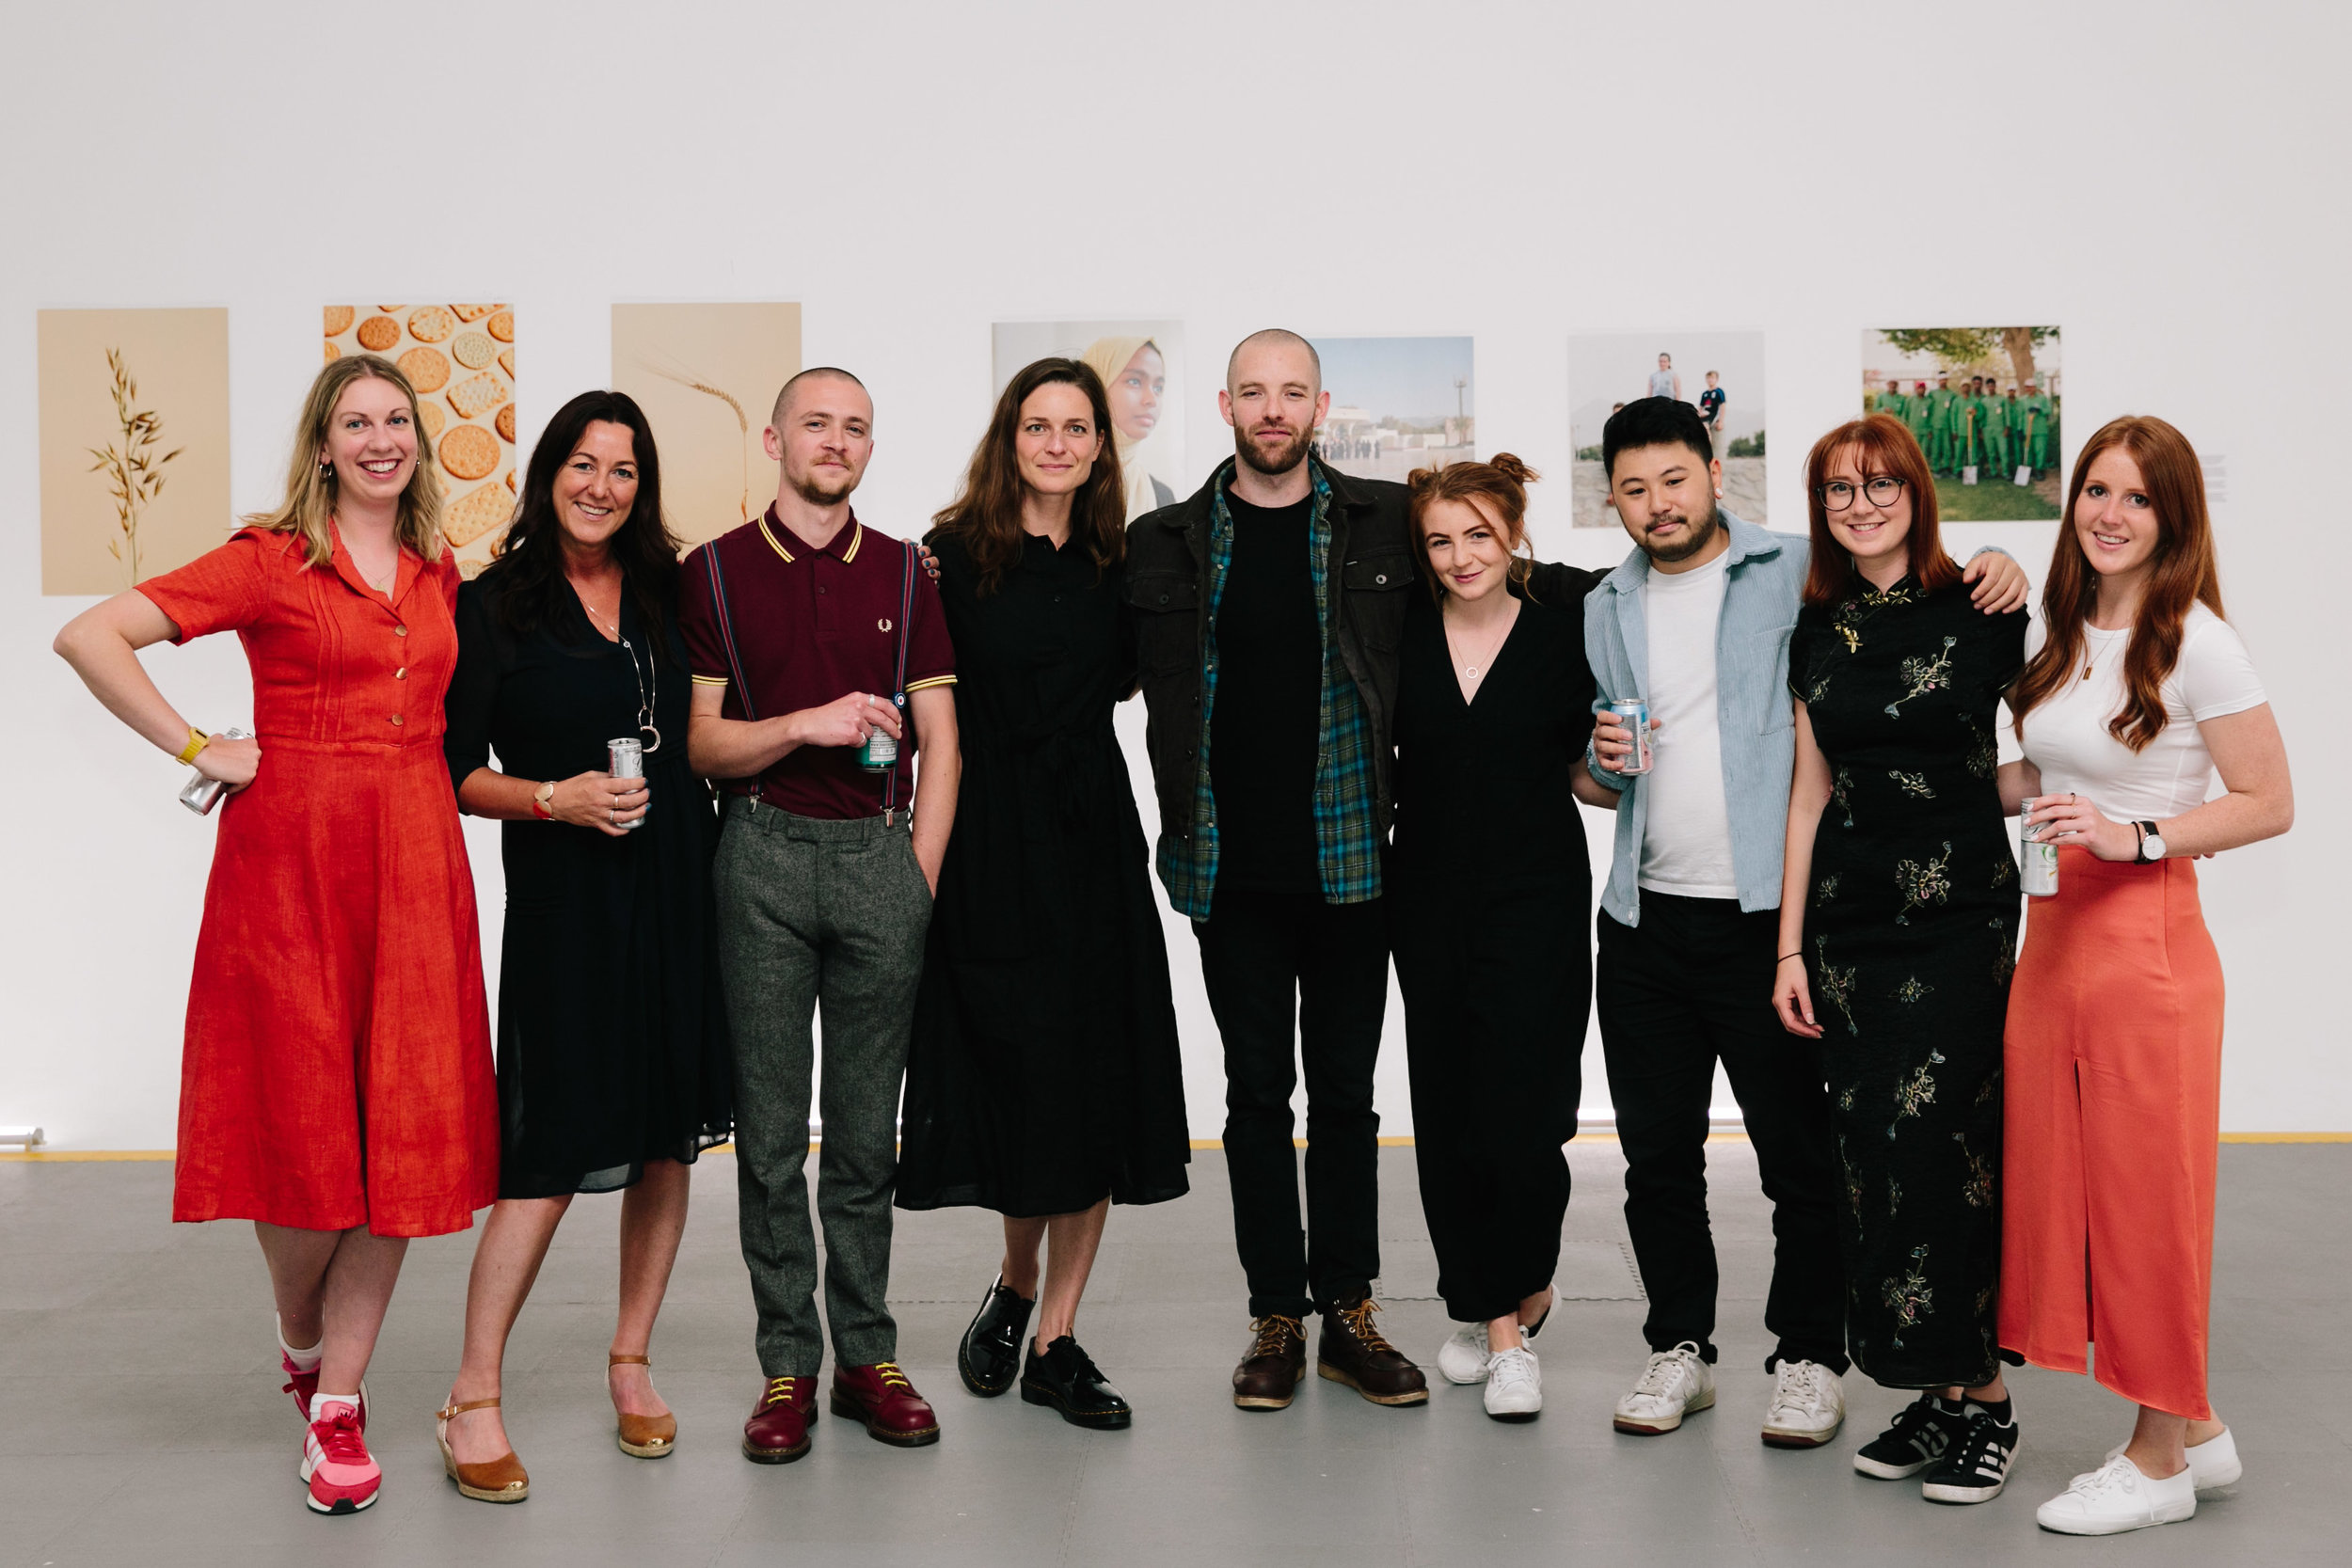 Lisa with the LPA Team and the 5 winners of LPA Futures 2019 at the recent launch party. From left to right- Clio, Lisa, Josh, Andrea, Andy, Frankie, Gavin, Chloe and Anna. © Raccoon London